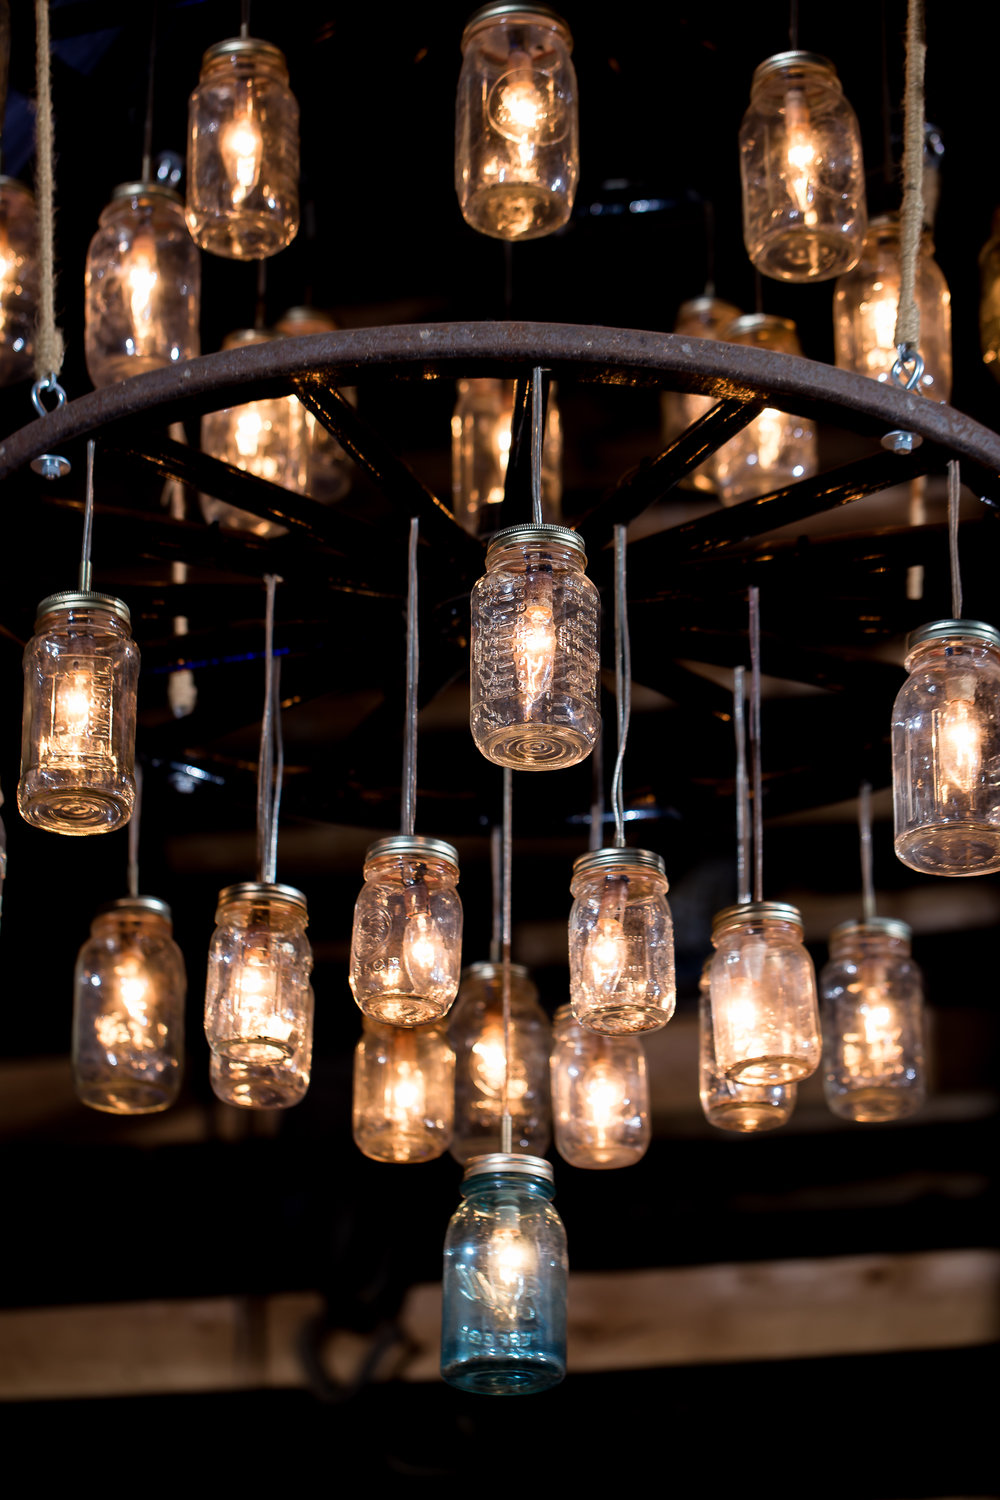 Gandjos_Tinko_BackSeatPhotography_backseatphoto90.JPG